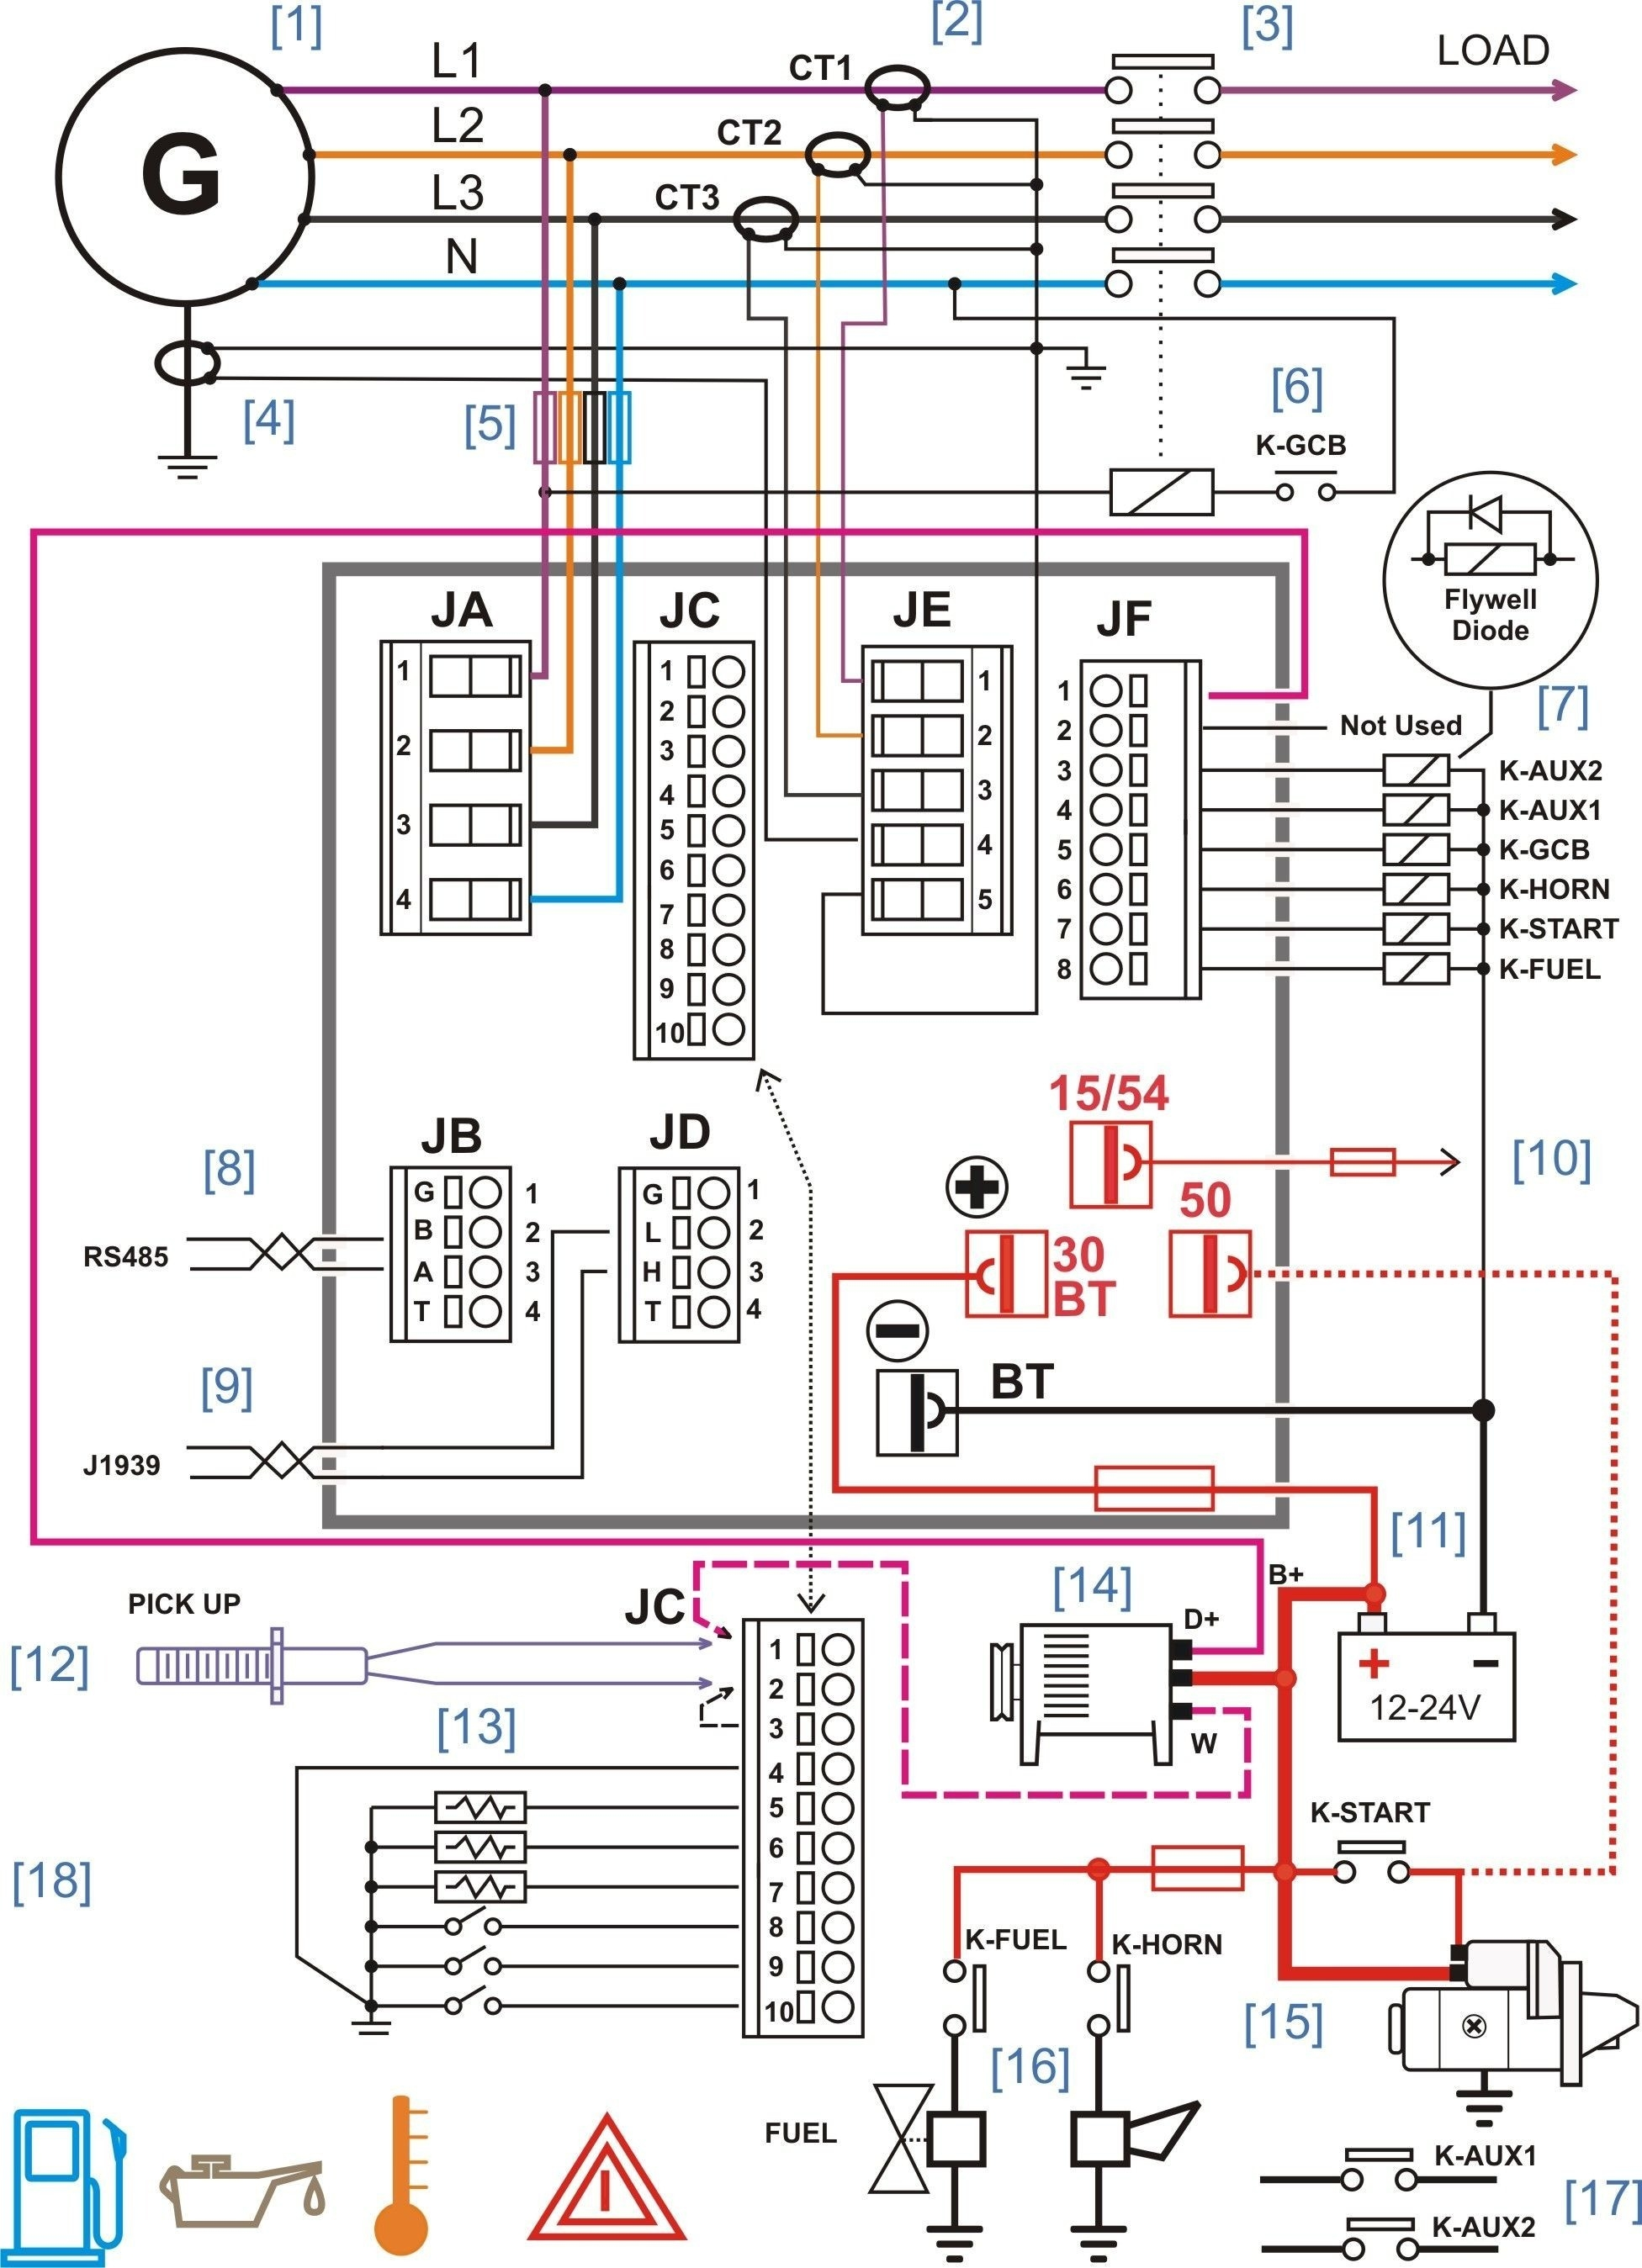 Http Cjrmorg Wiring533 - Diagram Schematics on